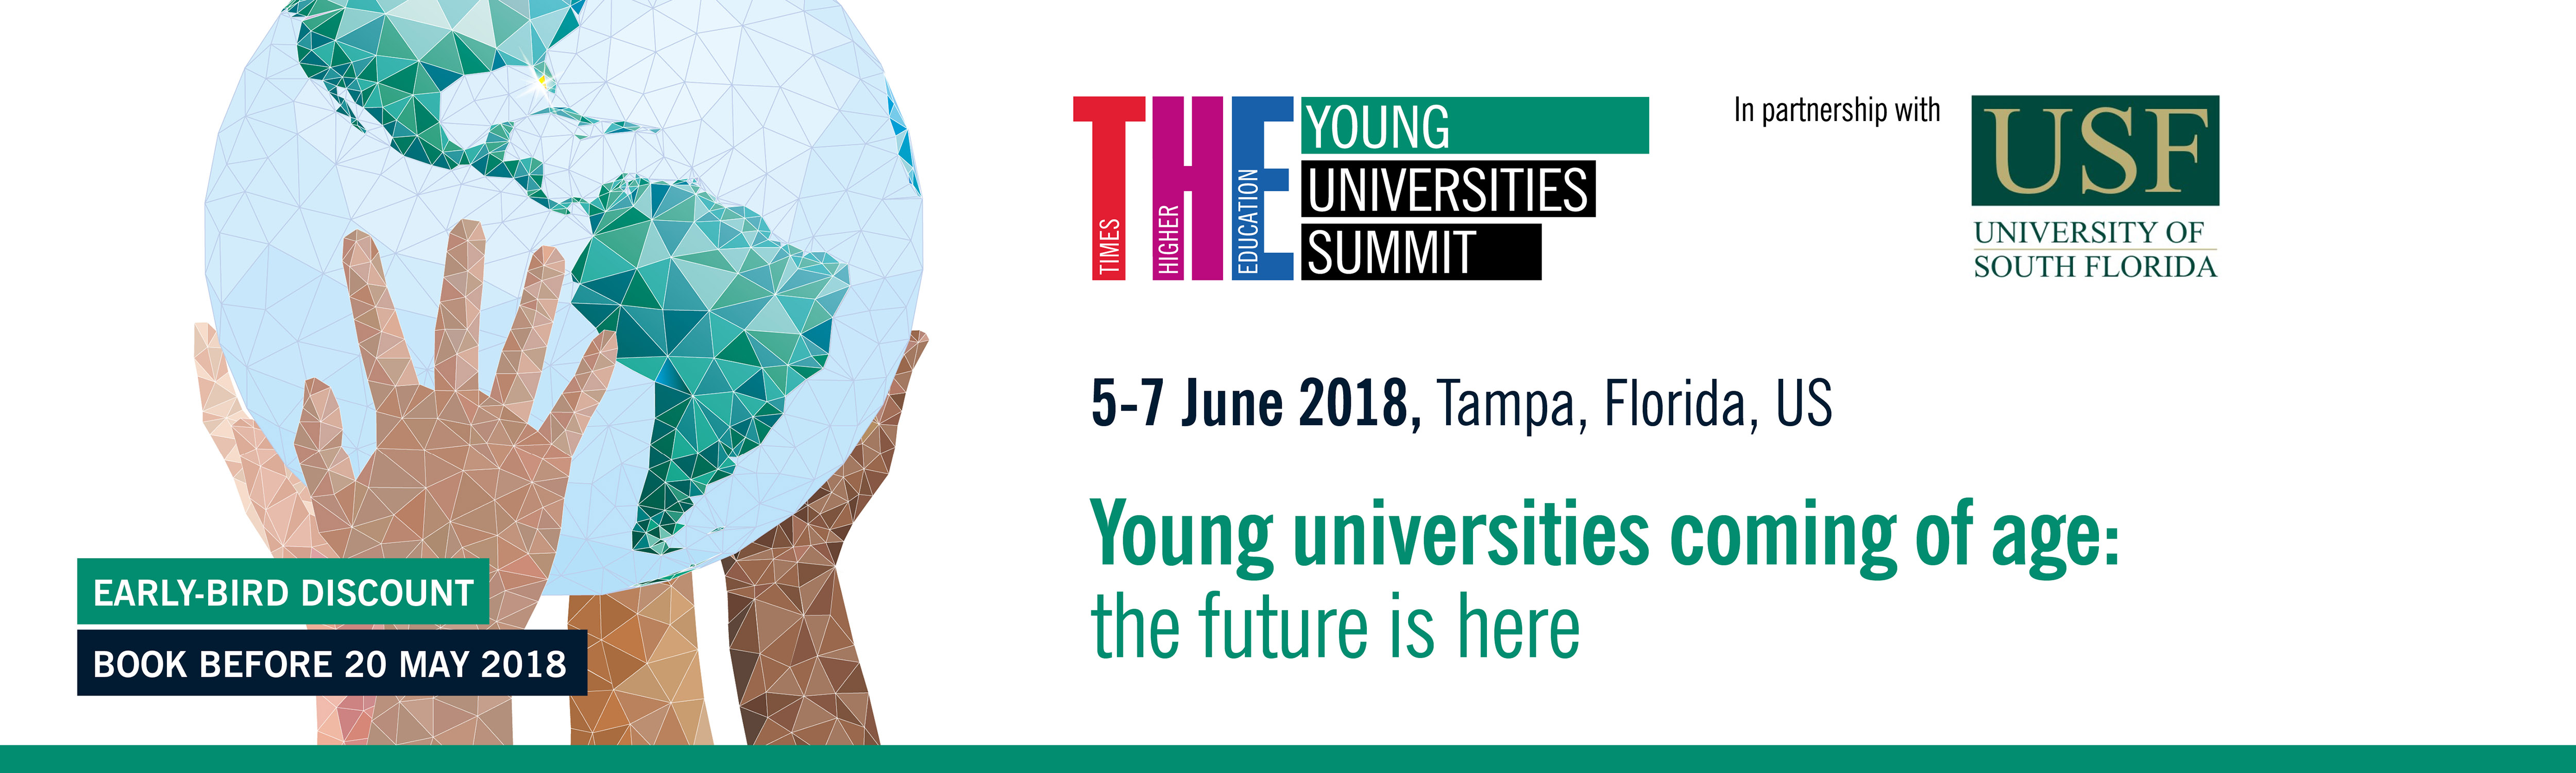 THE Young Universities Summit 2018